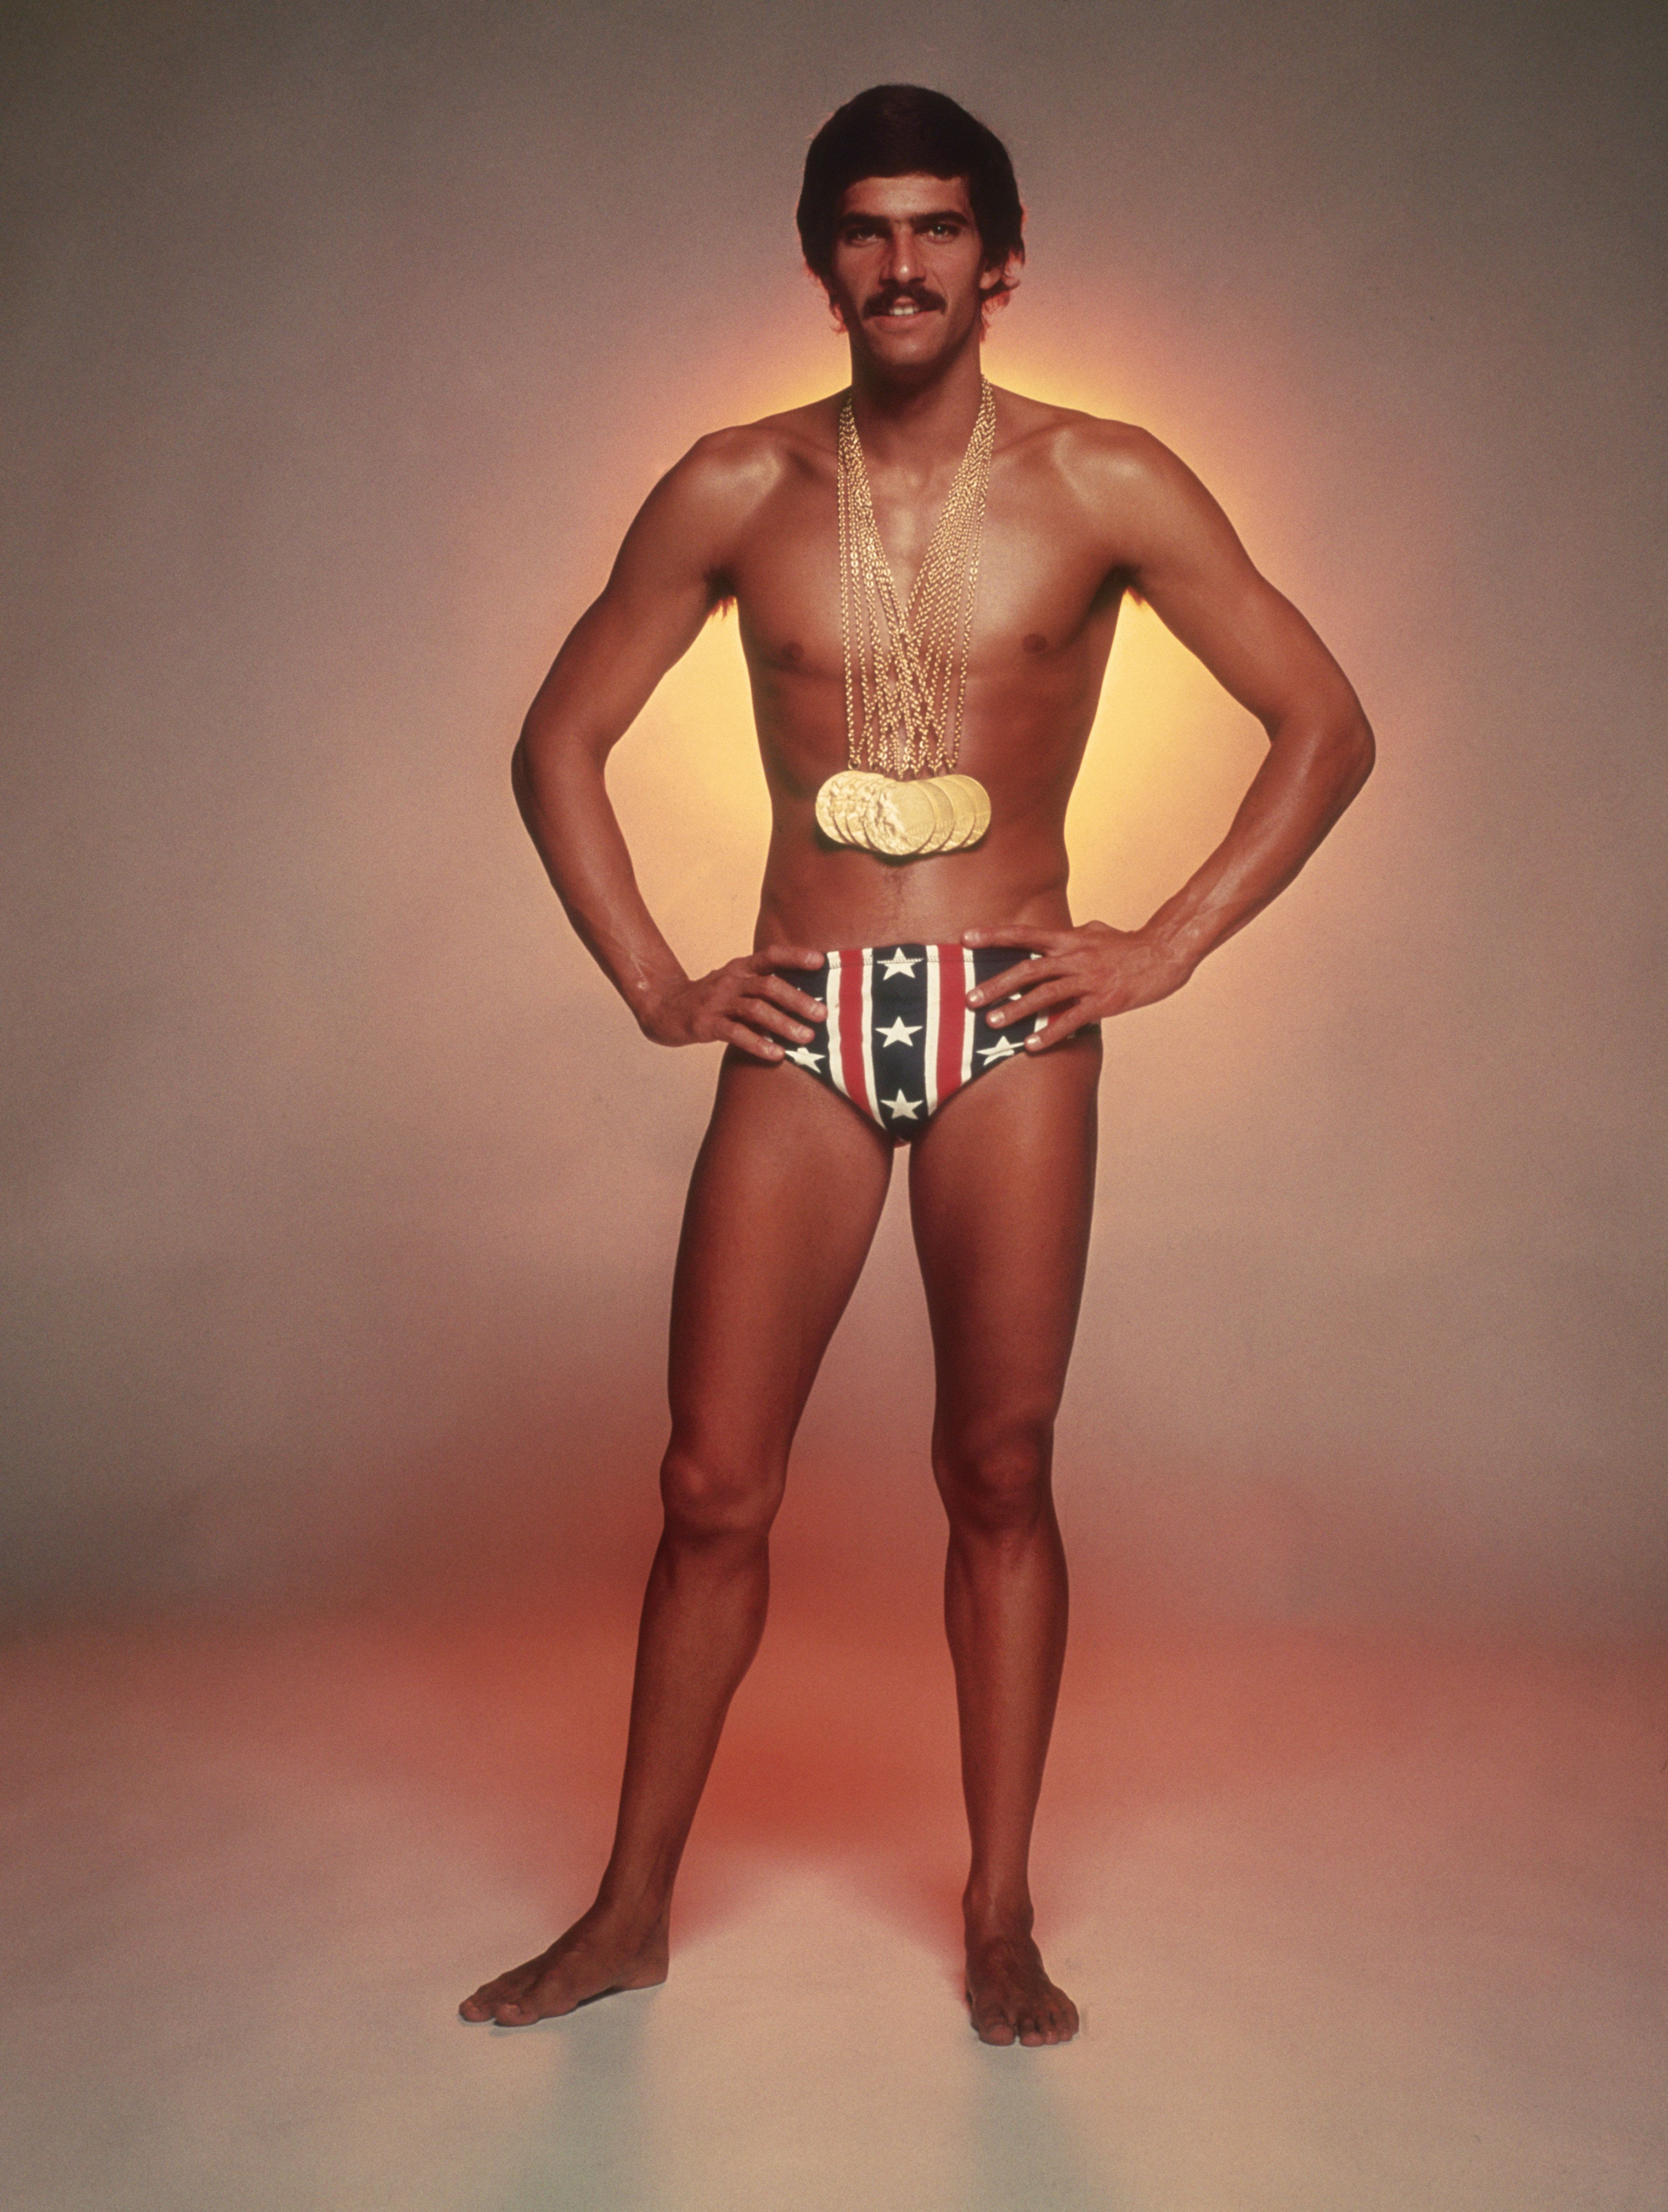 American swimmer Mark Spitz, circa 1973, with the seven gold medals, which he won at the 1972 Munich Olympic Games. (Photo by Terry O'Neill/Hulton Archive/Getty Images)